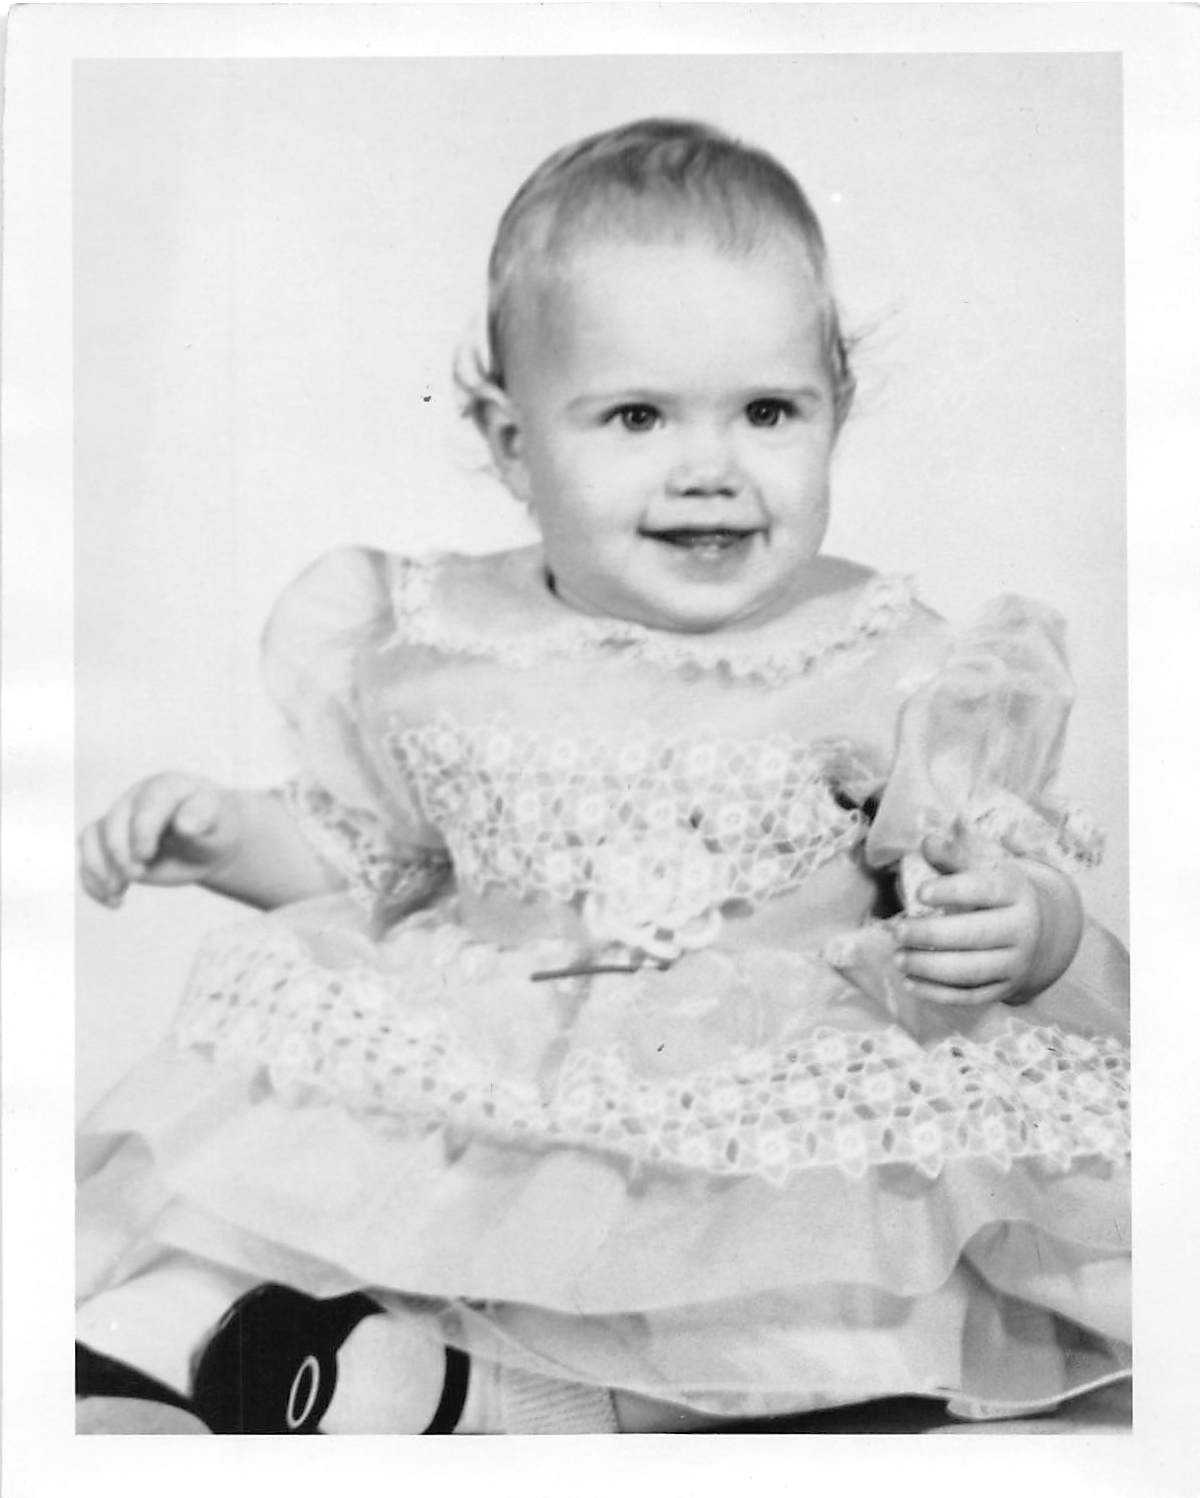 Obituary for Mary L. Armstrong (Photo album)